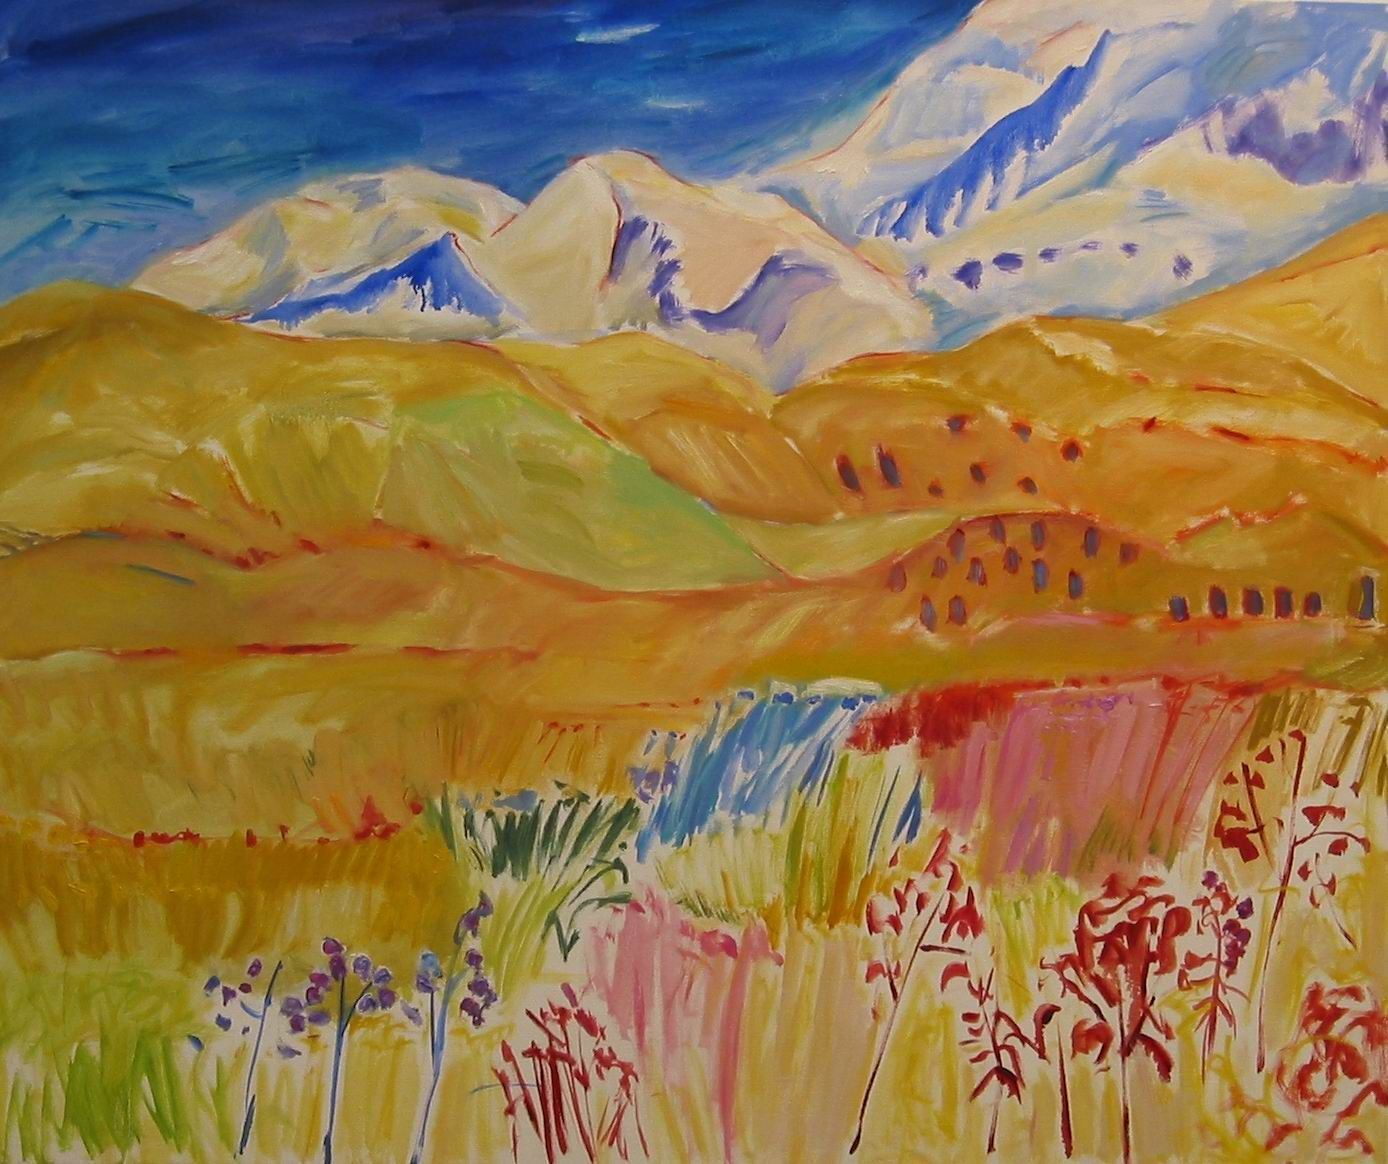 3Up to the Mountains oil on canvas 50x50ins.jpg